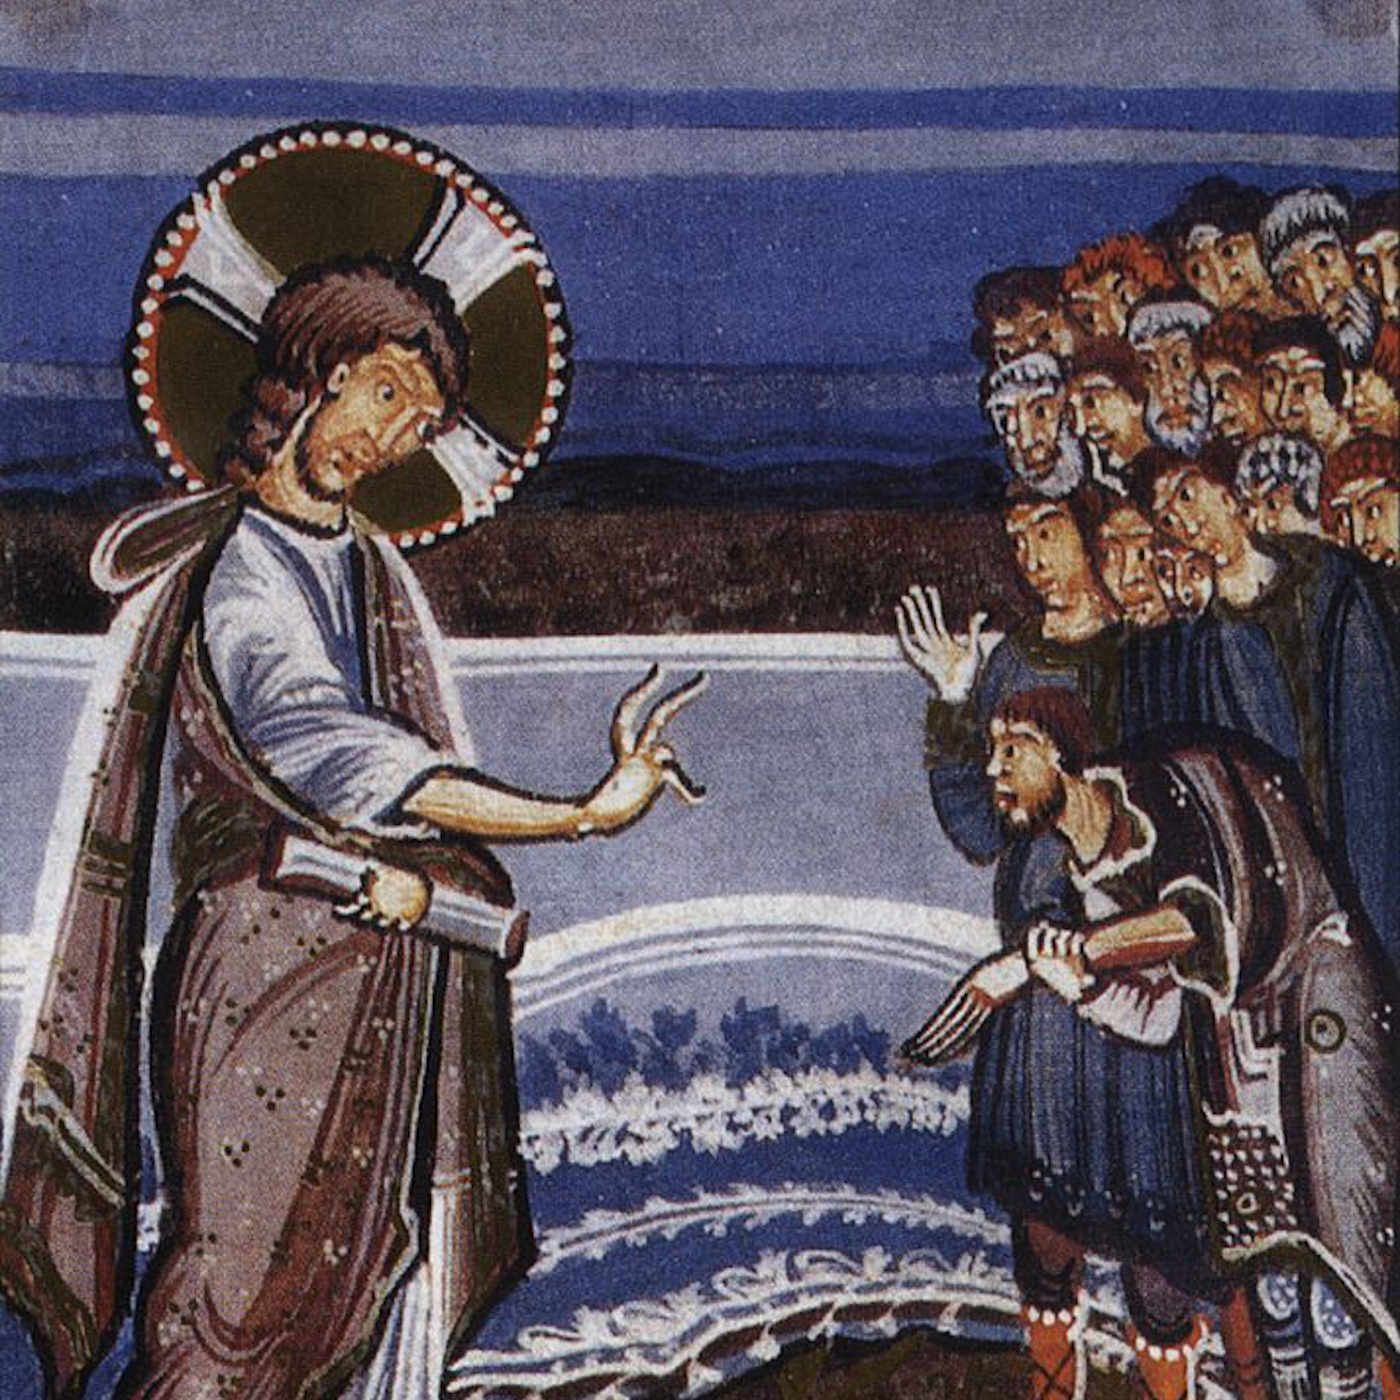 Monday of the Twenty-Third Week in Ordinary Time - Perceiving the Intentions of Others